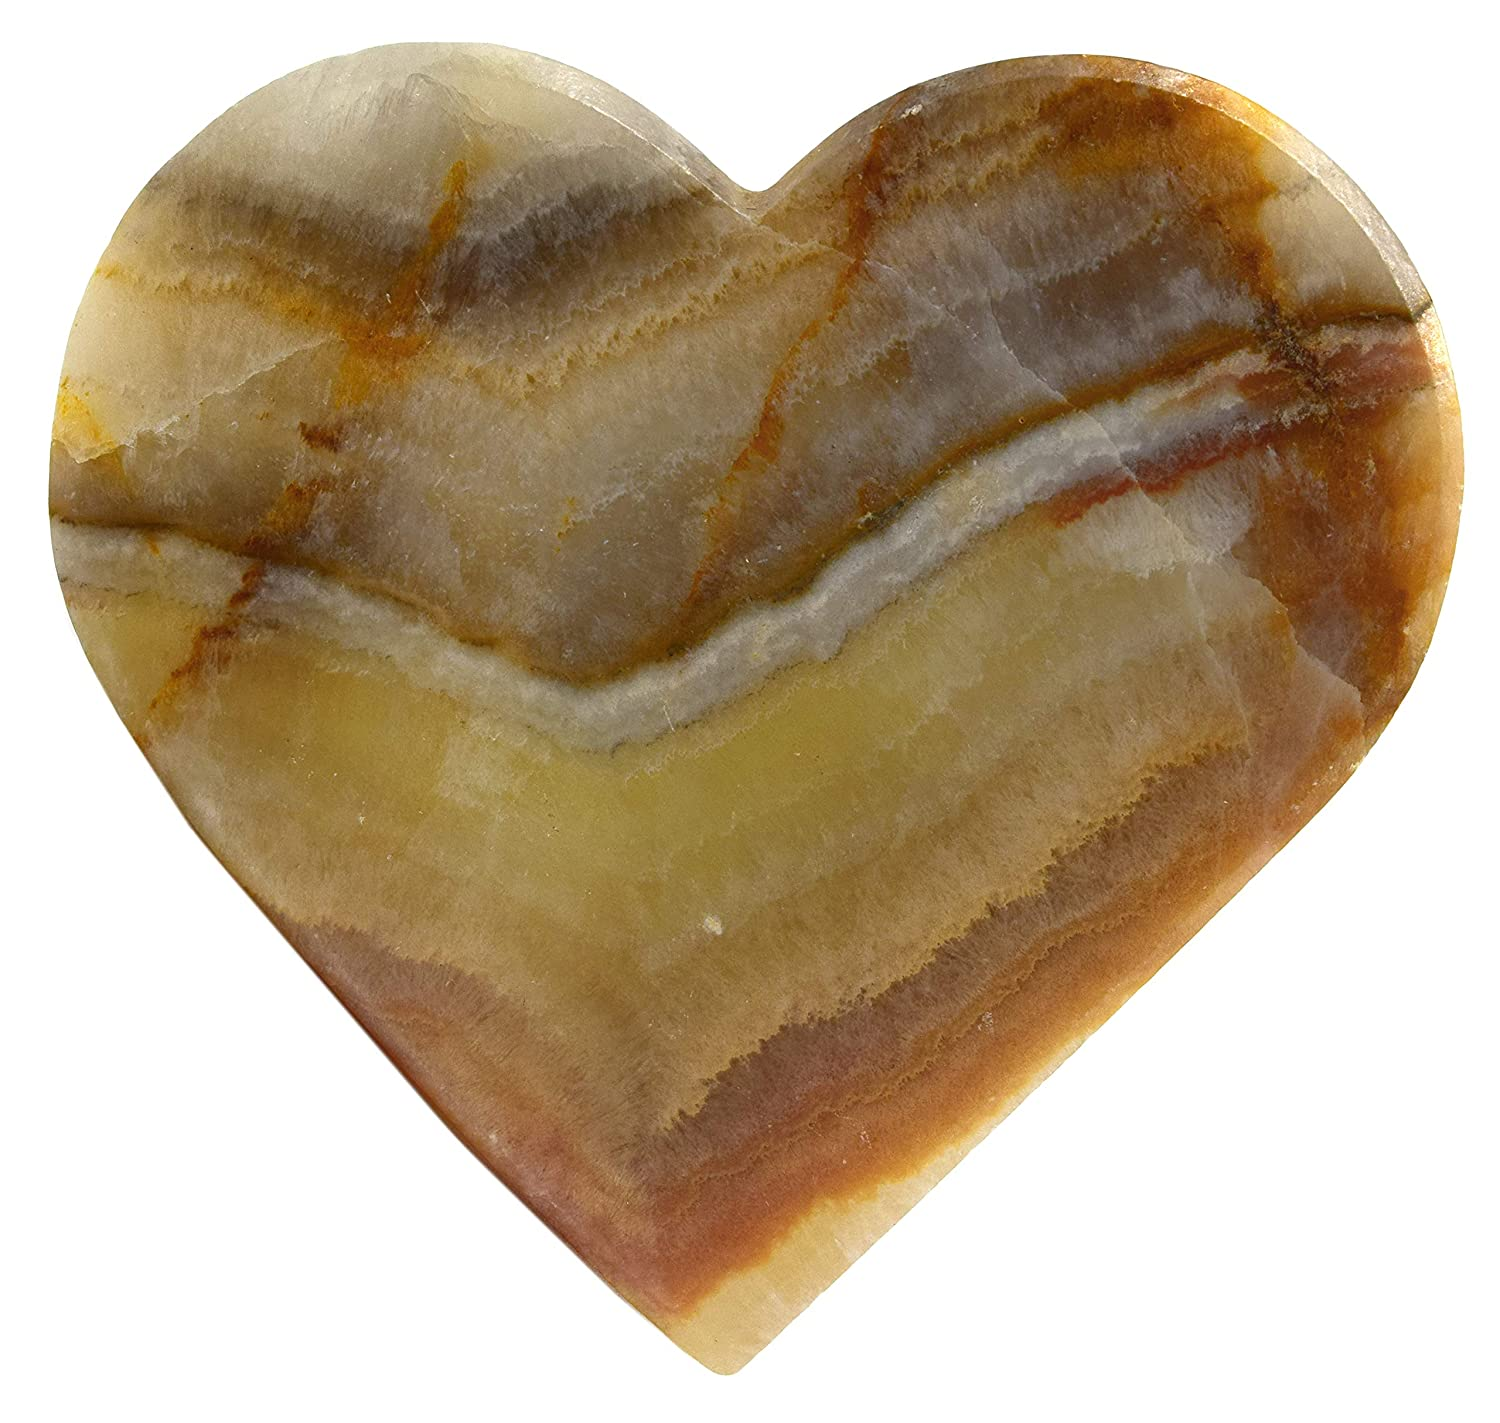 The Artisan Mined Series by hBAR 3 Wide 0.25 Tall 0.3lb 3 Long - Carved from Real North American Onyx Aragonite Earthen Green Onyx Aragonite Heart Figure